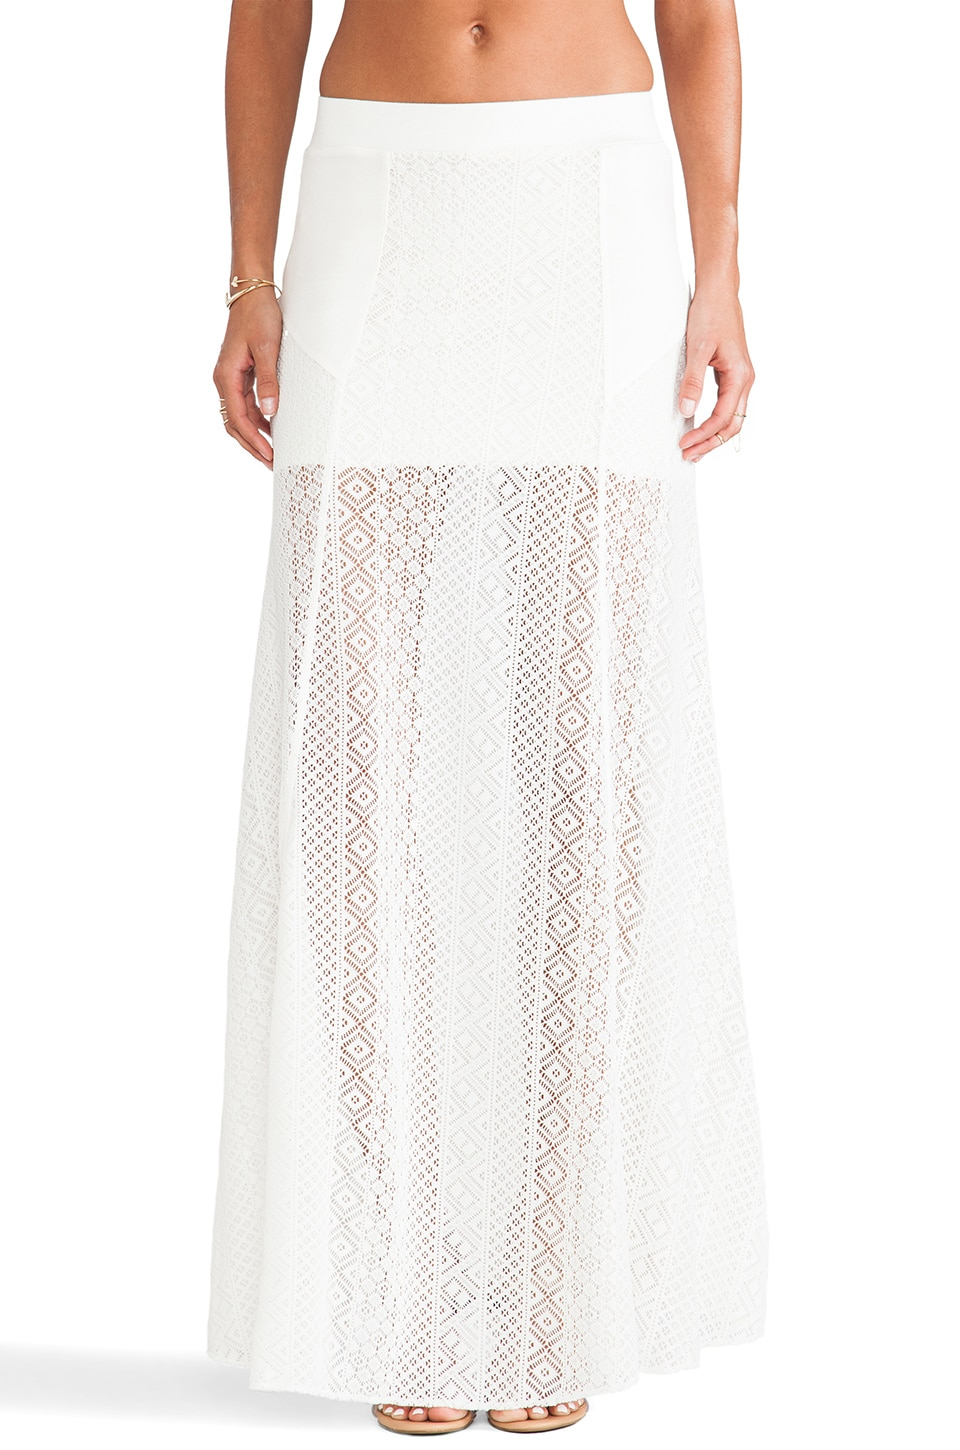 L*SPACE Swept Away Crochet Skirt in Ivory